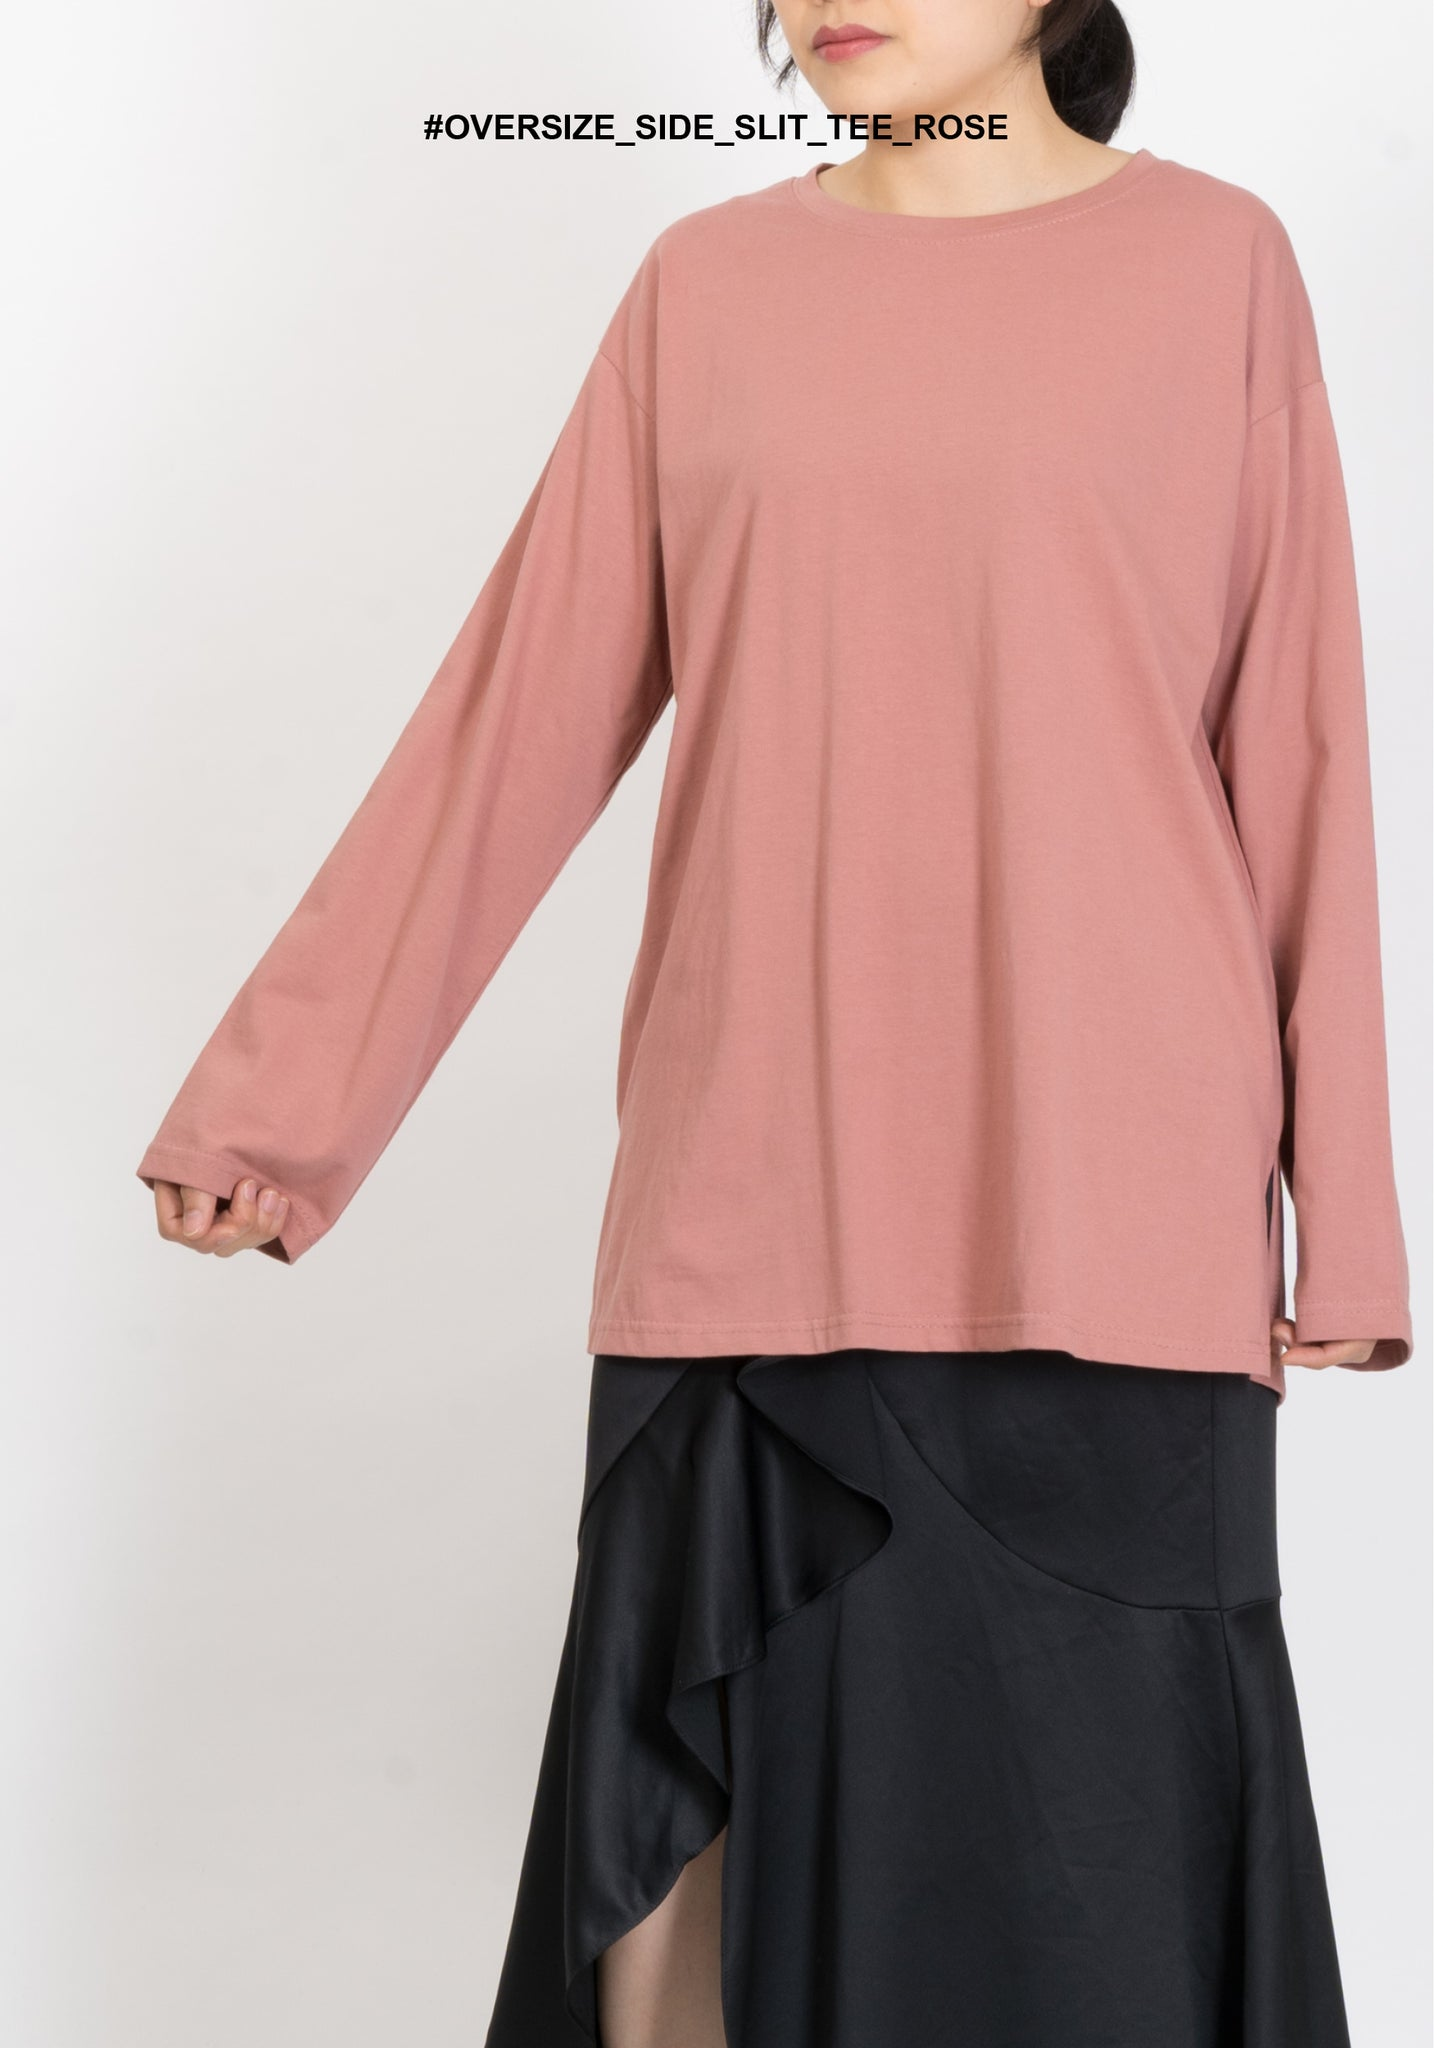 Oversize Side Slit Tee Rose - whoami